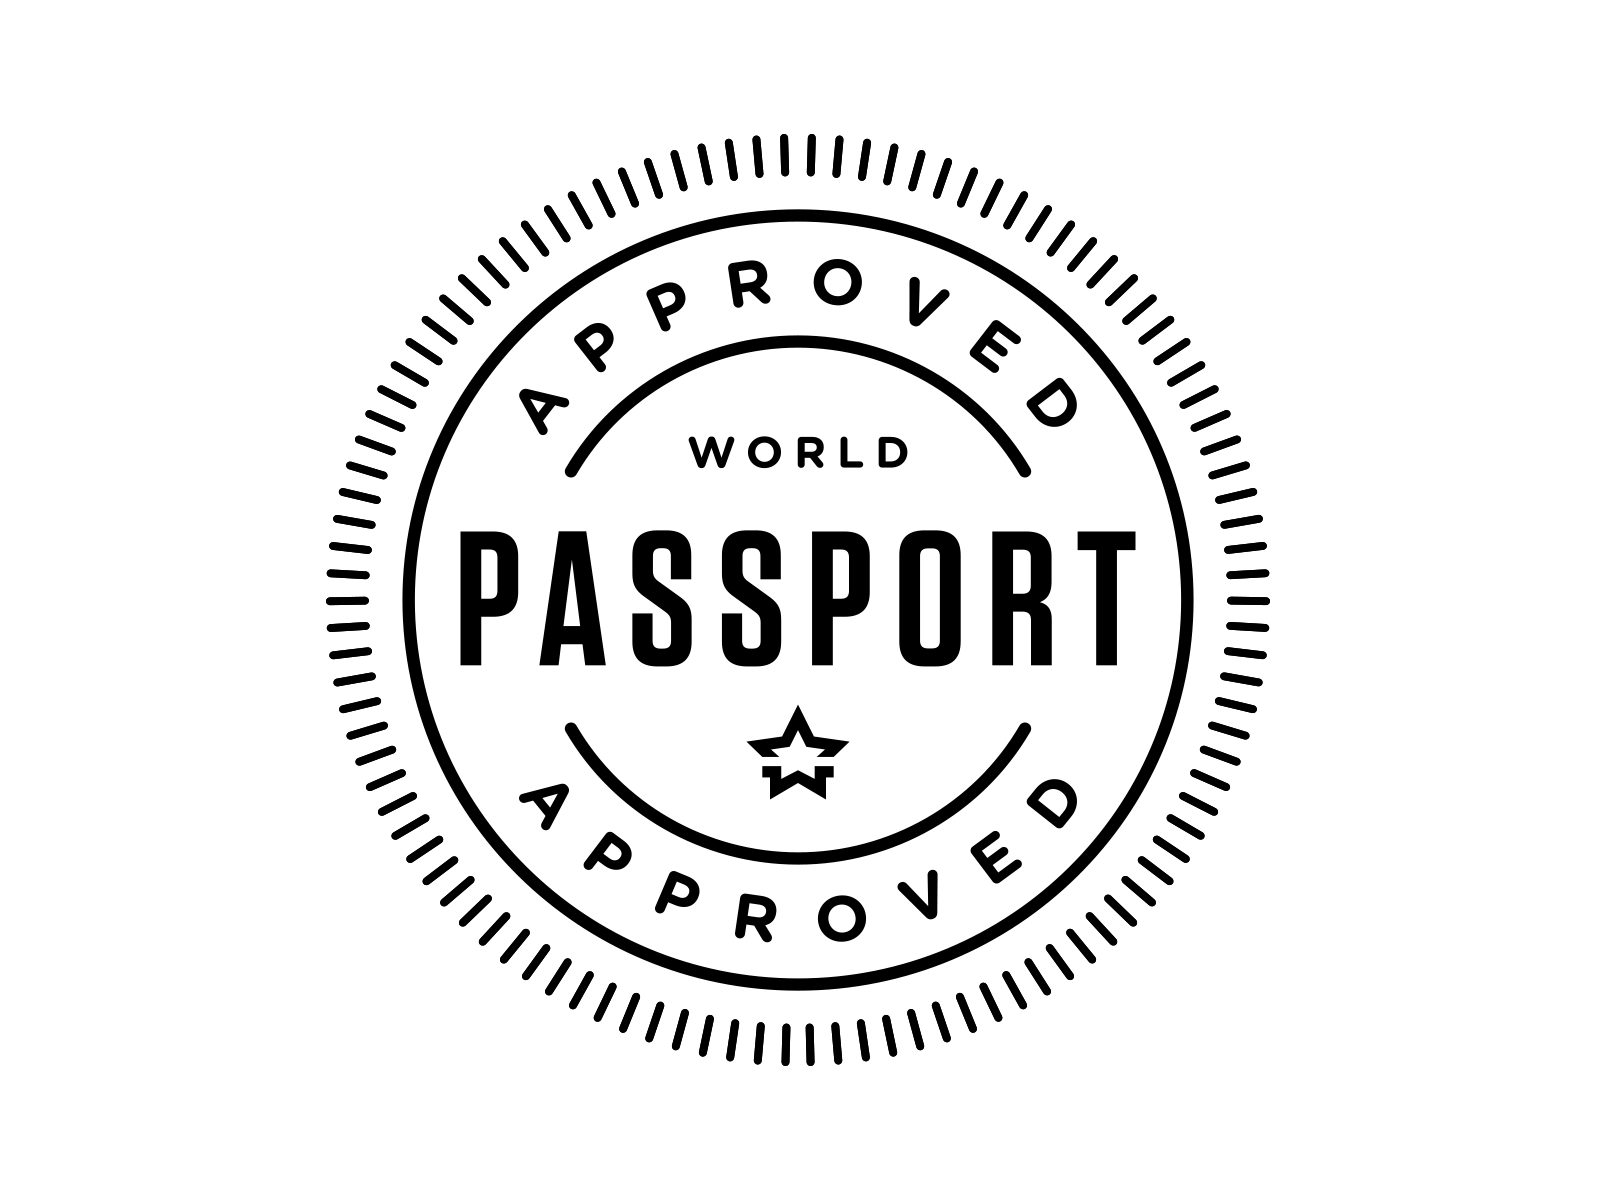 hight resolution of approved world passport baby passport wine passport passport stamps passport invitations invites